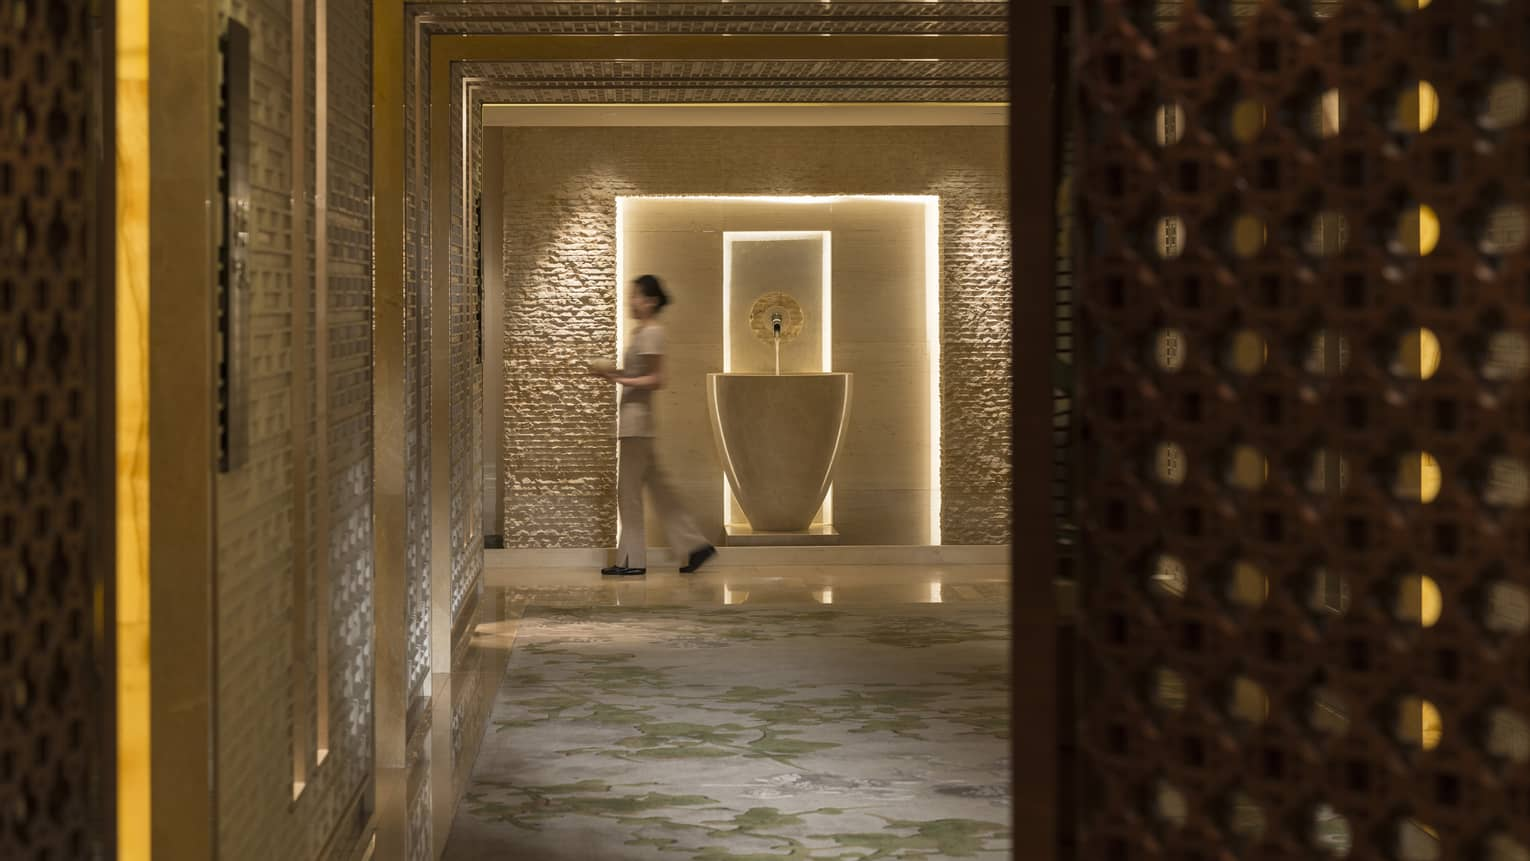 Spa staff walks with towels down marble hall past tall vase